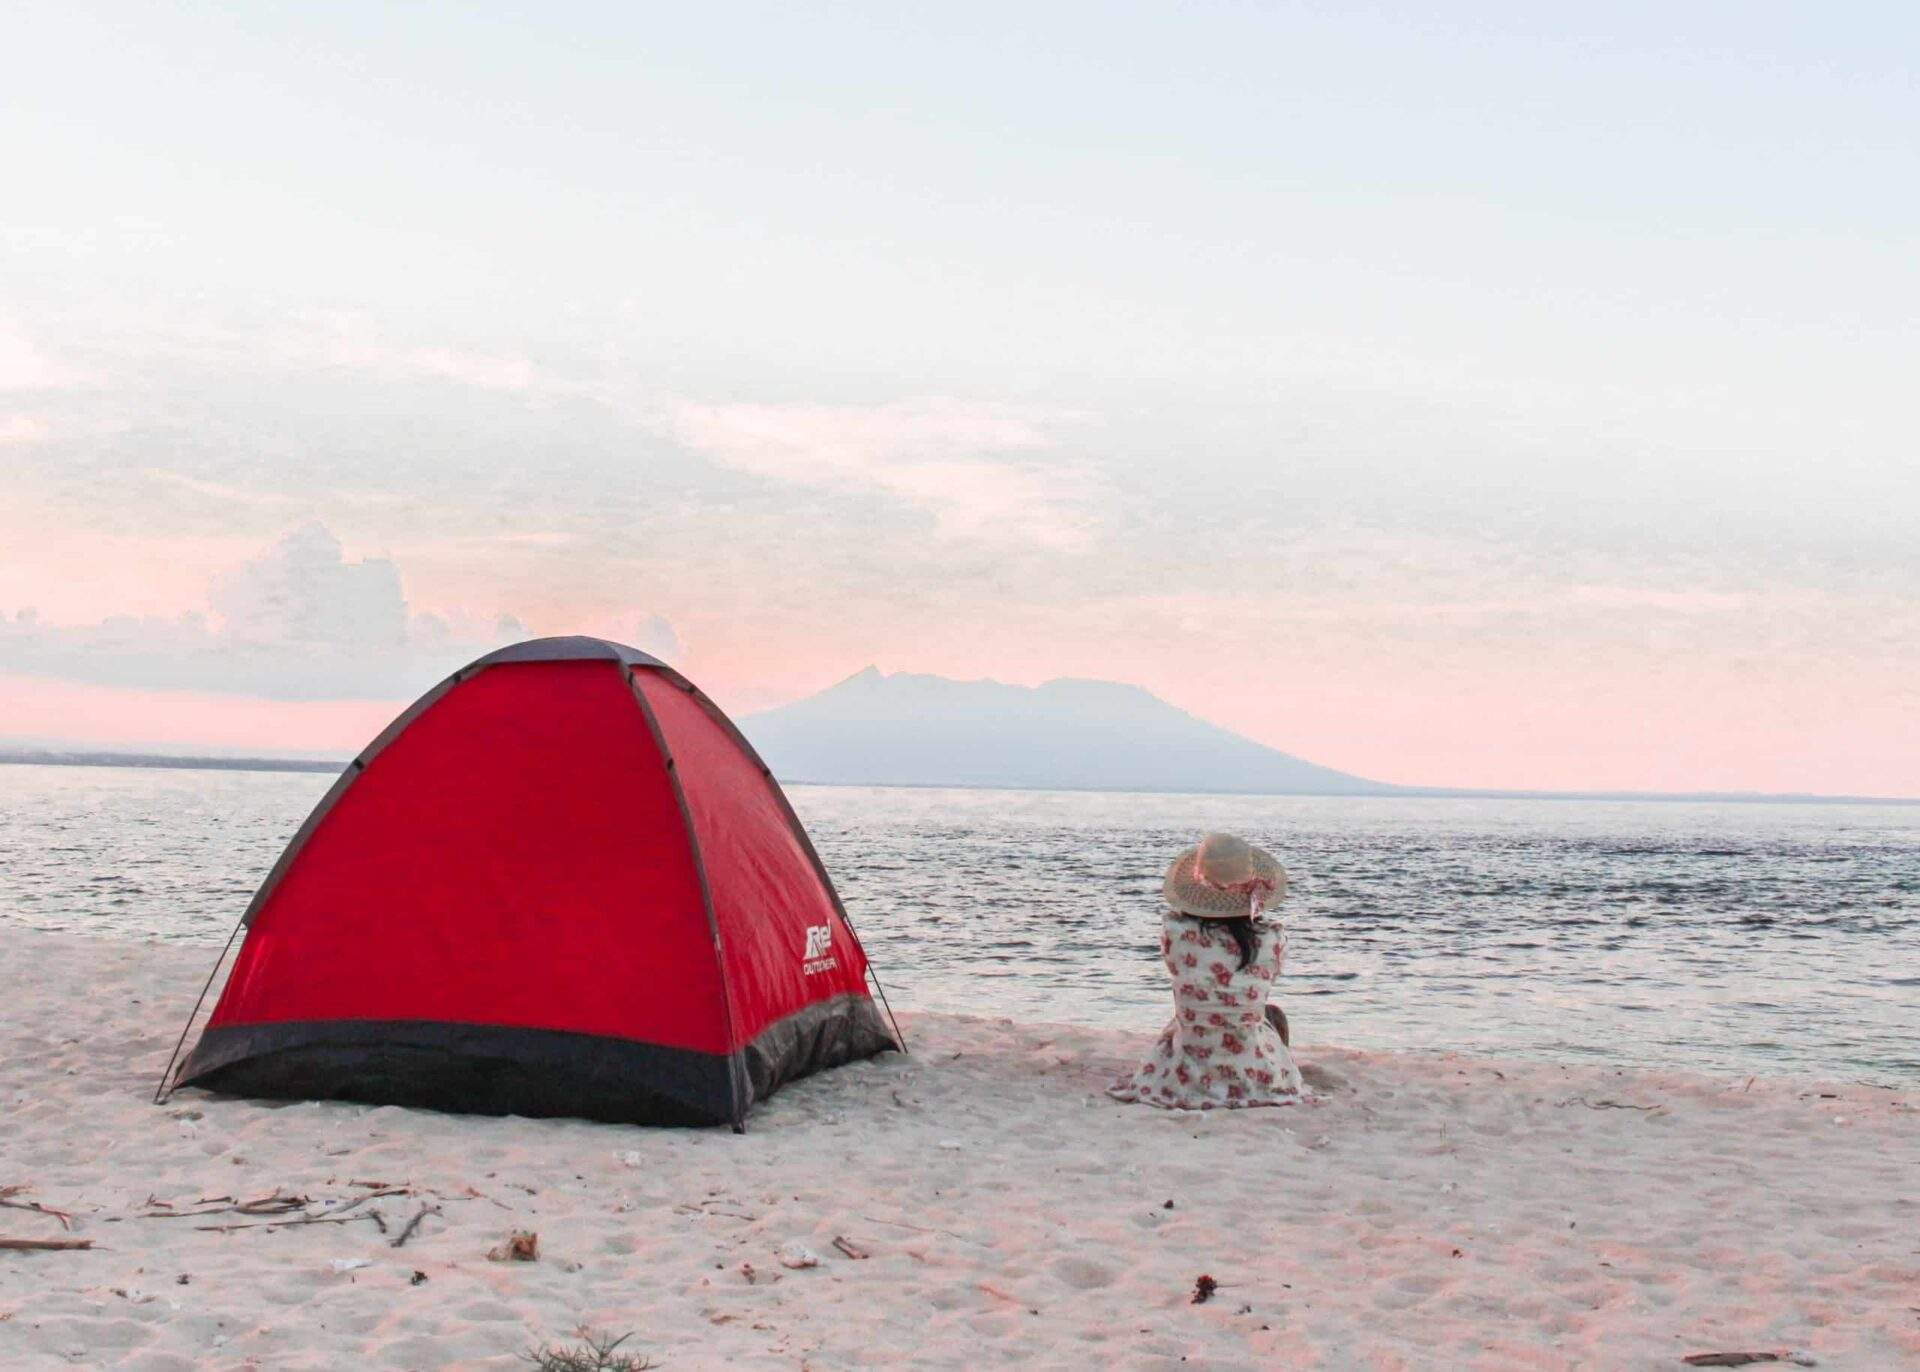 The Top 15 Beach Camping Tents in 2020